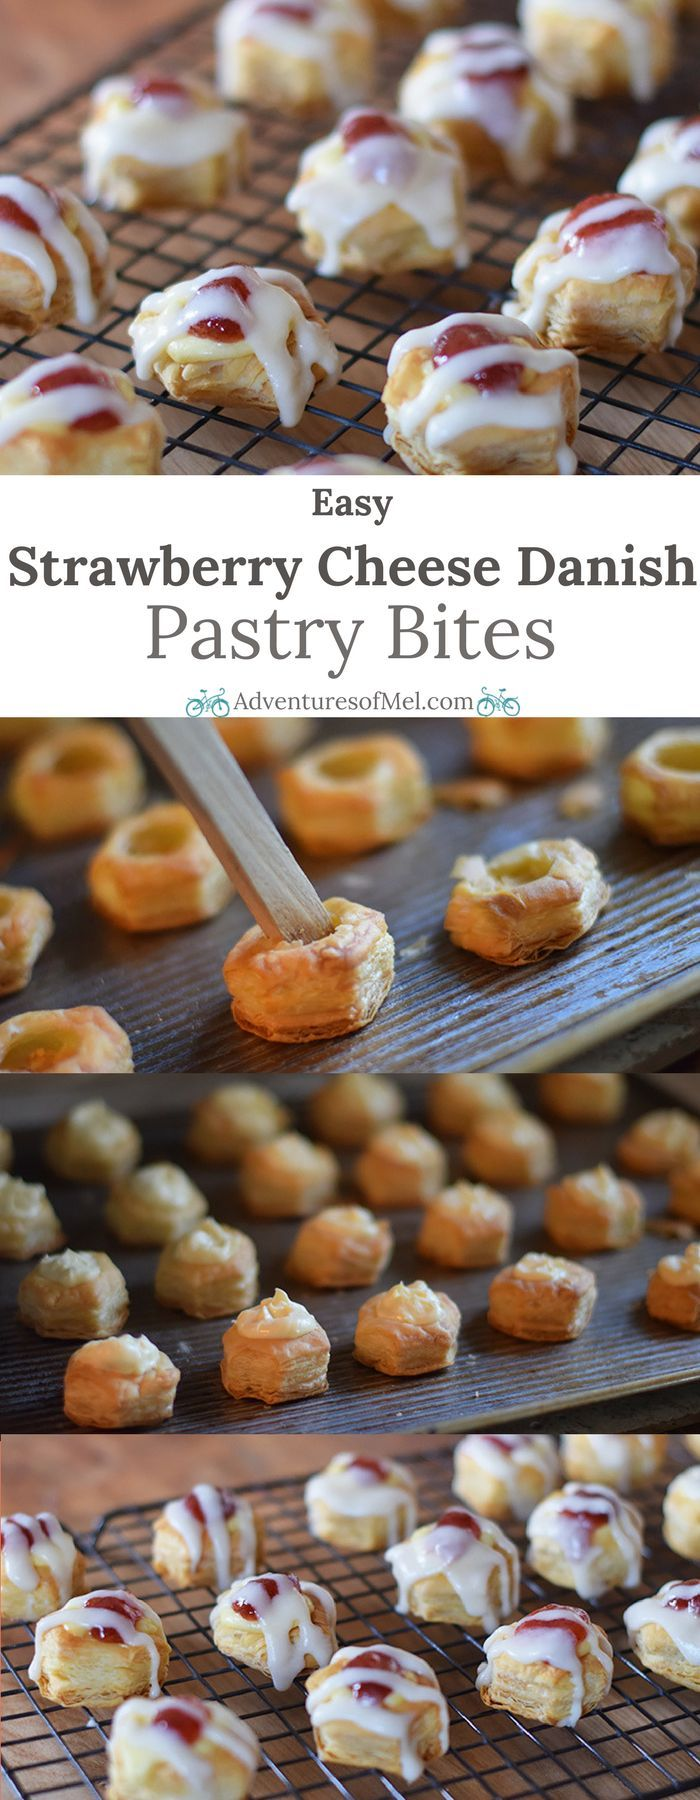 Satisfy your sweet tooth with Easy Strawberry Cheese Danish Pastry Bites. Made with bite-sized Puff Pastry Cups, they're so easy to make and so delightfully scrumptious, allowing for moderation, as well! #puffpastry #bitesized #cheesedanish #pastry #strawberry #ValentinesDay #dessert